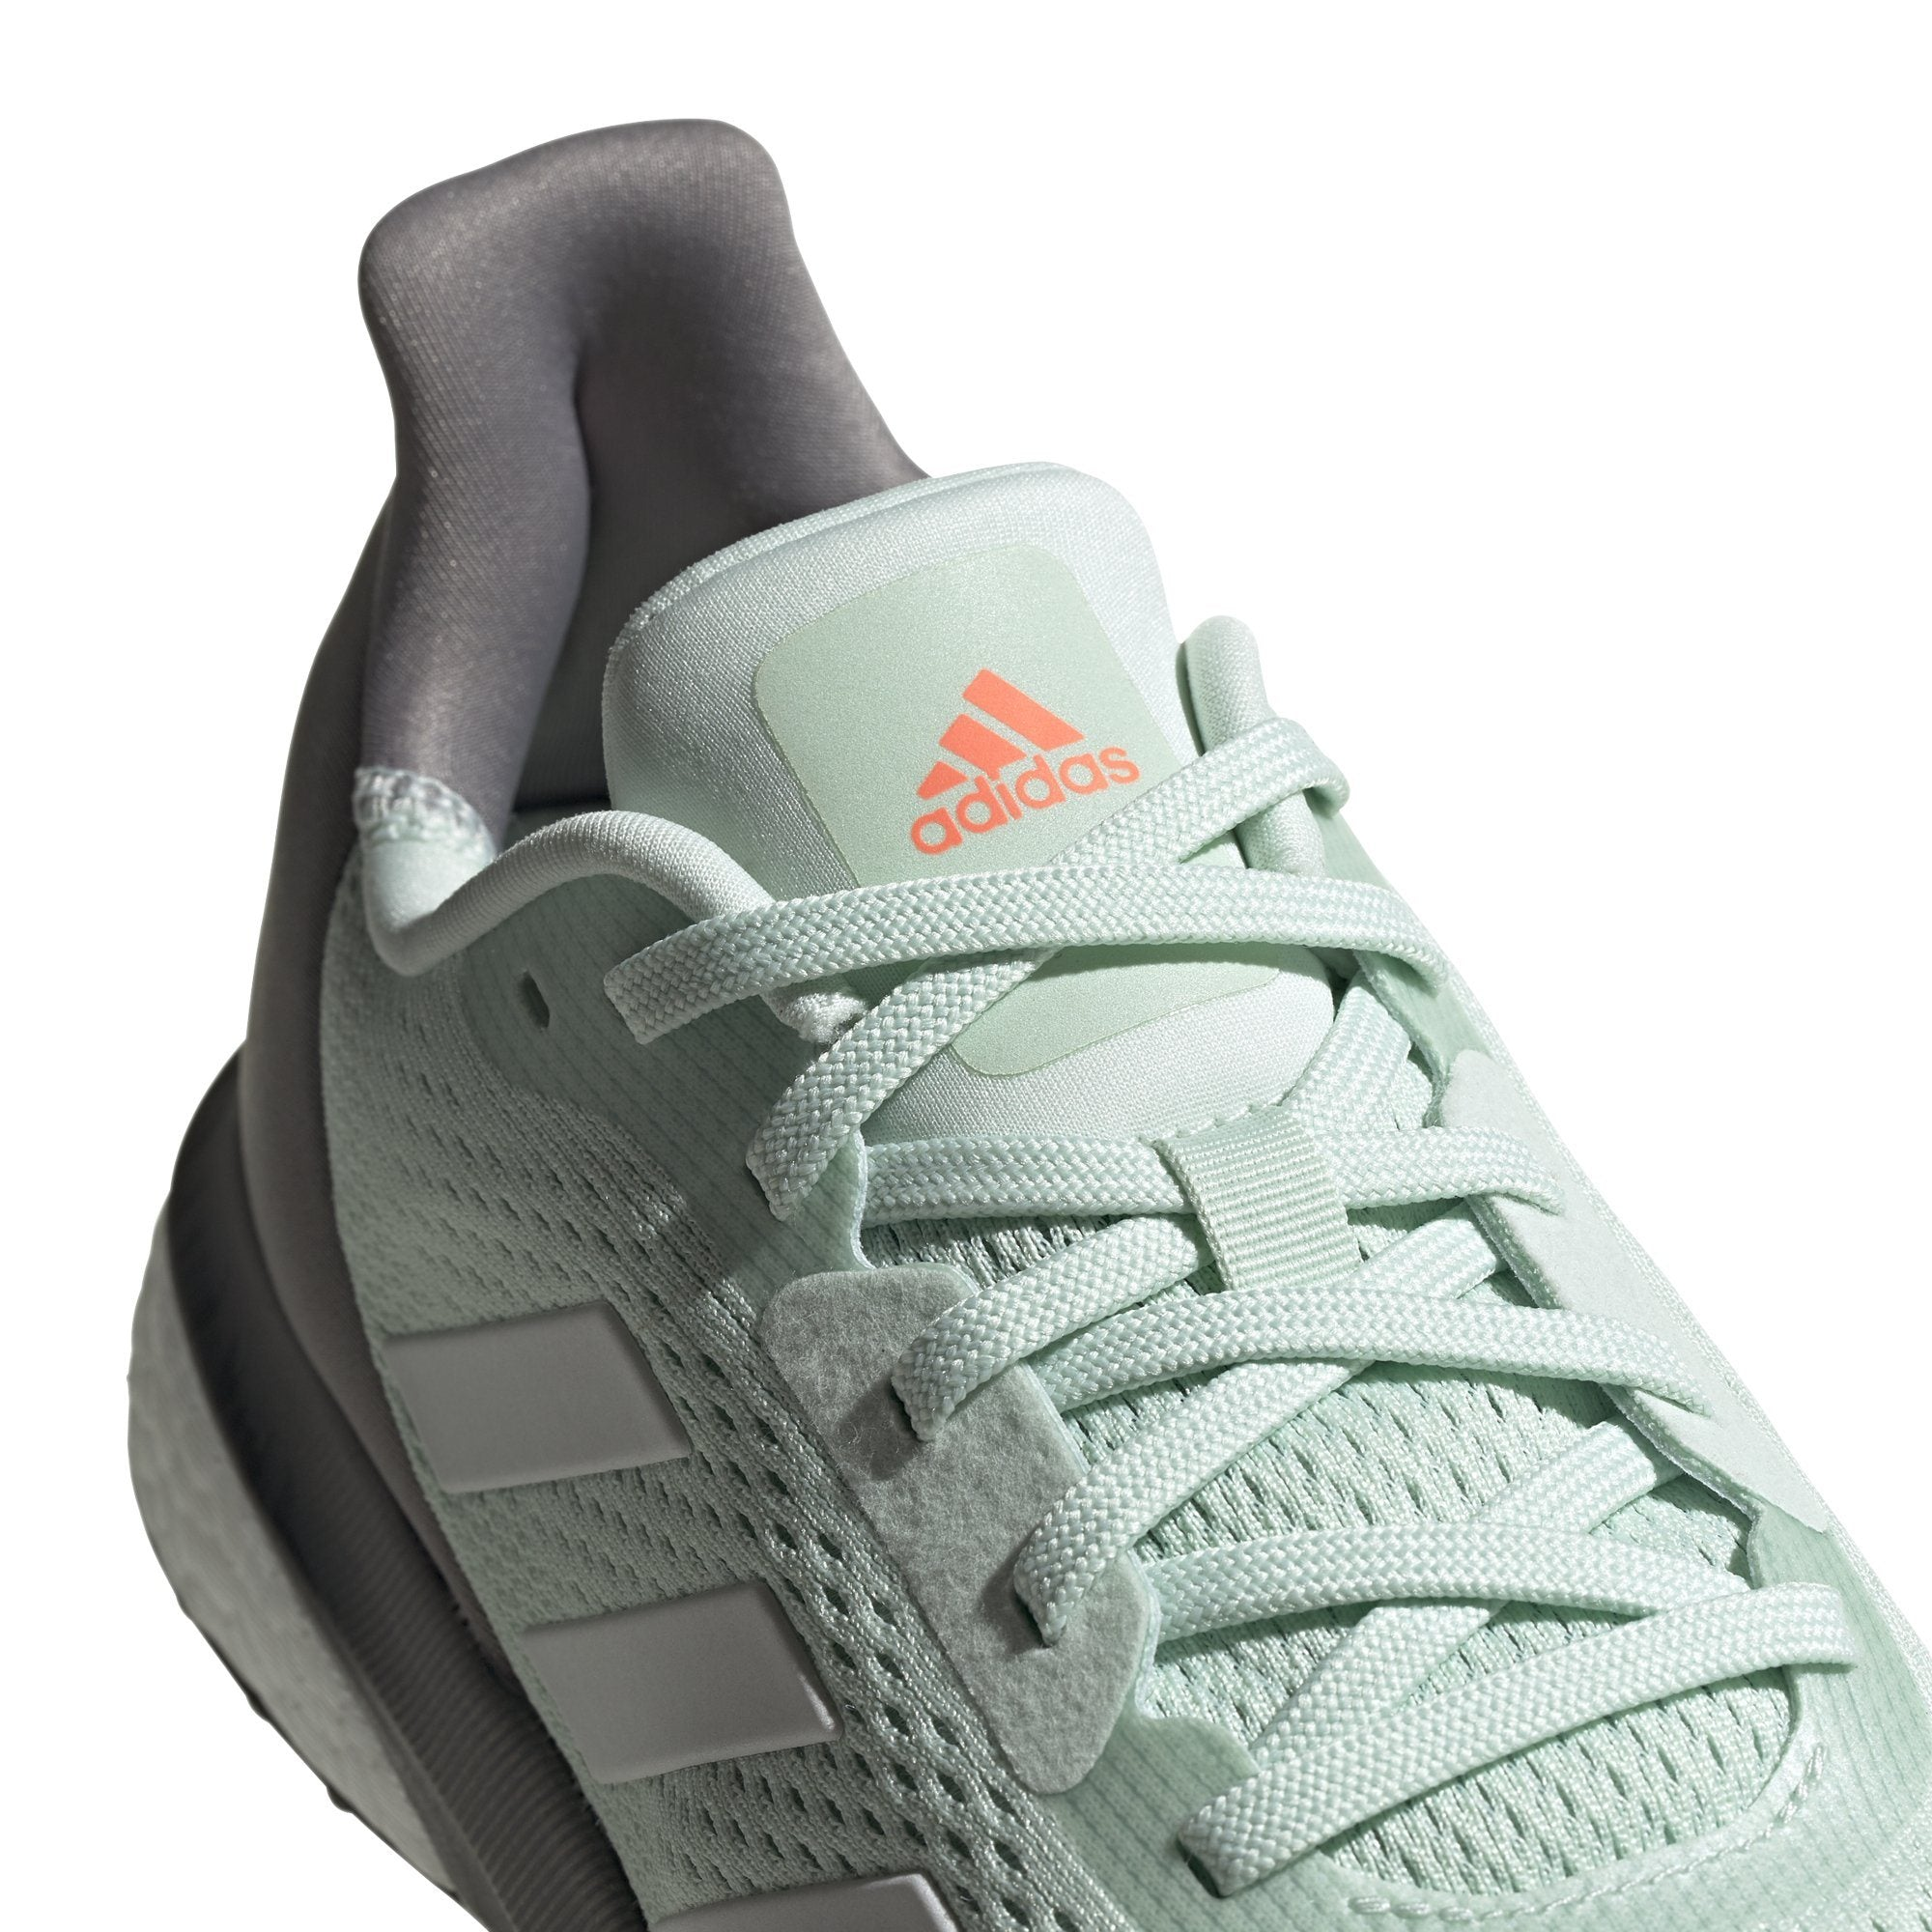 Adidas Womens Astrarun Shoes - Dash Green/White/Dove Grey SP-Footwear-Womens Adidas